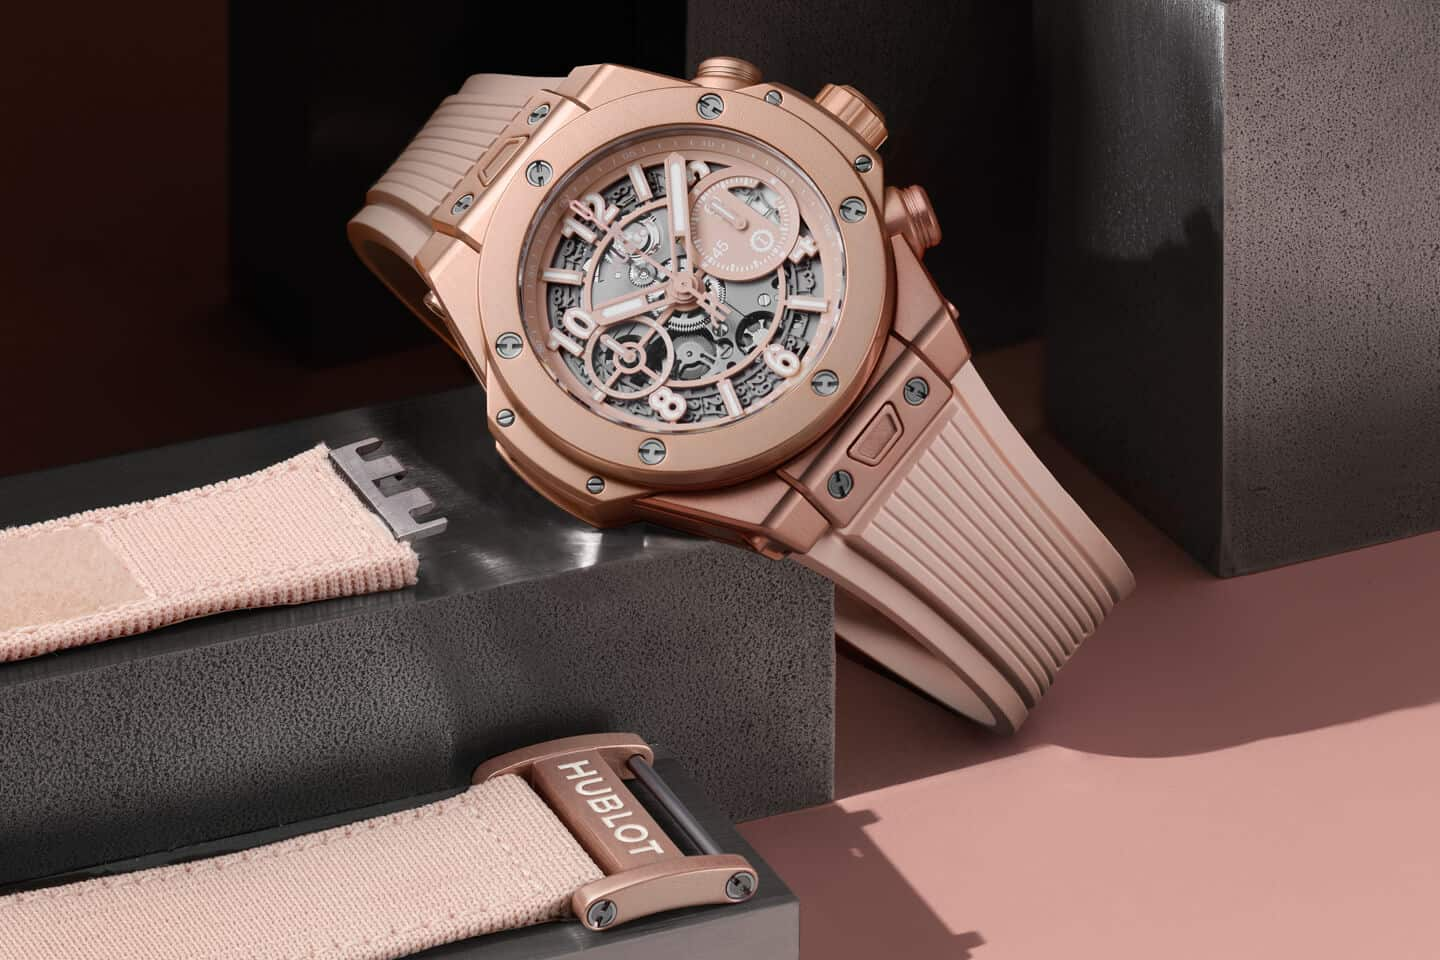 Hublot and Garage Italia present the new Big Bang Millennial Pink Gender-Neutral Watch